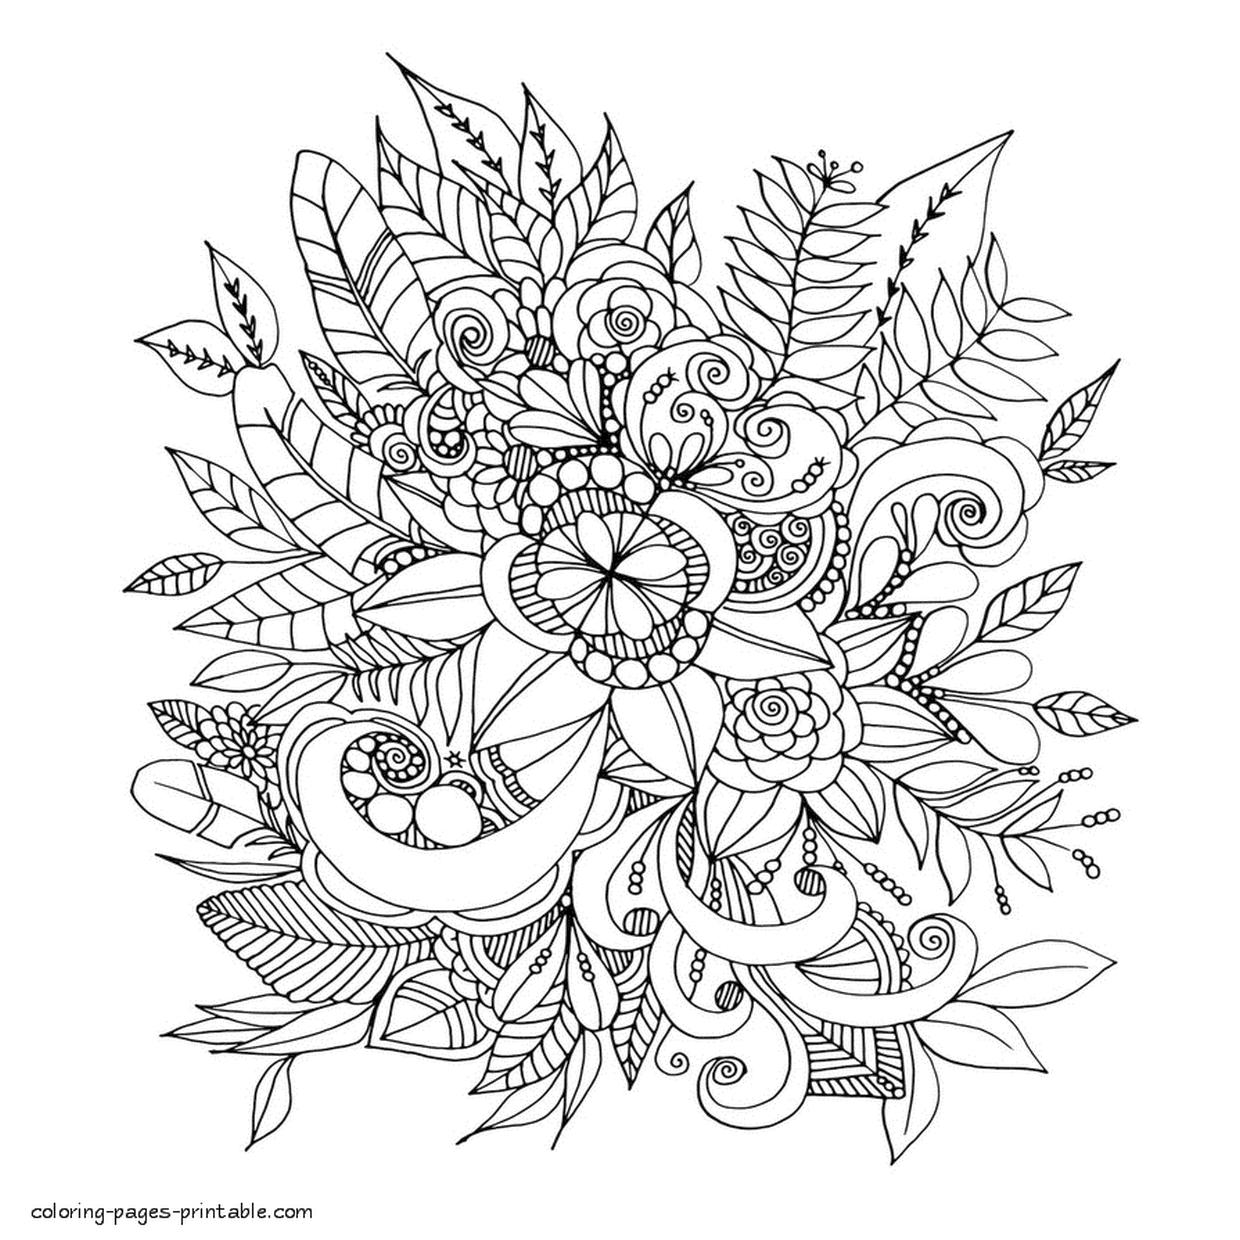 Adult Coloring Pages Floral Patterns Printable hpd0